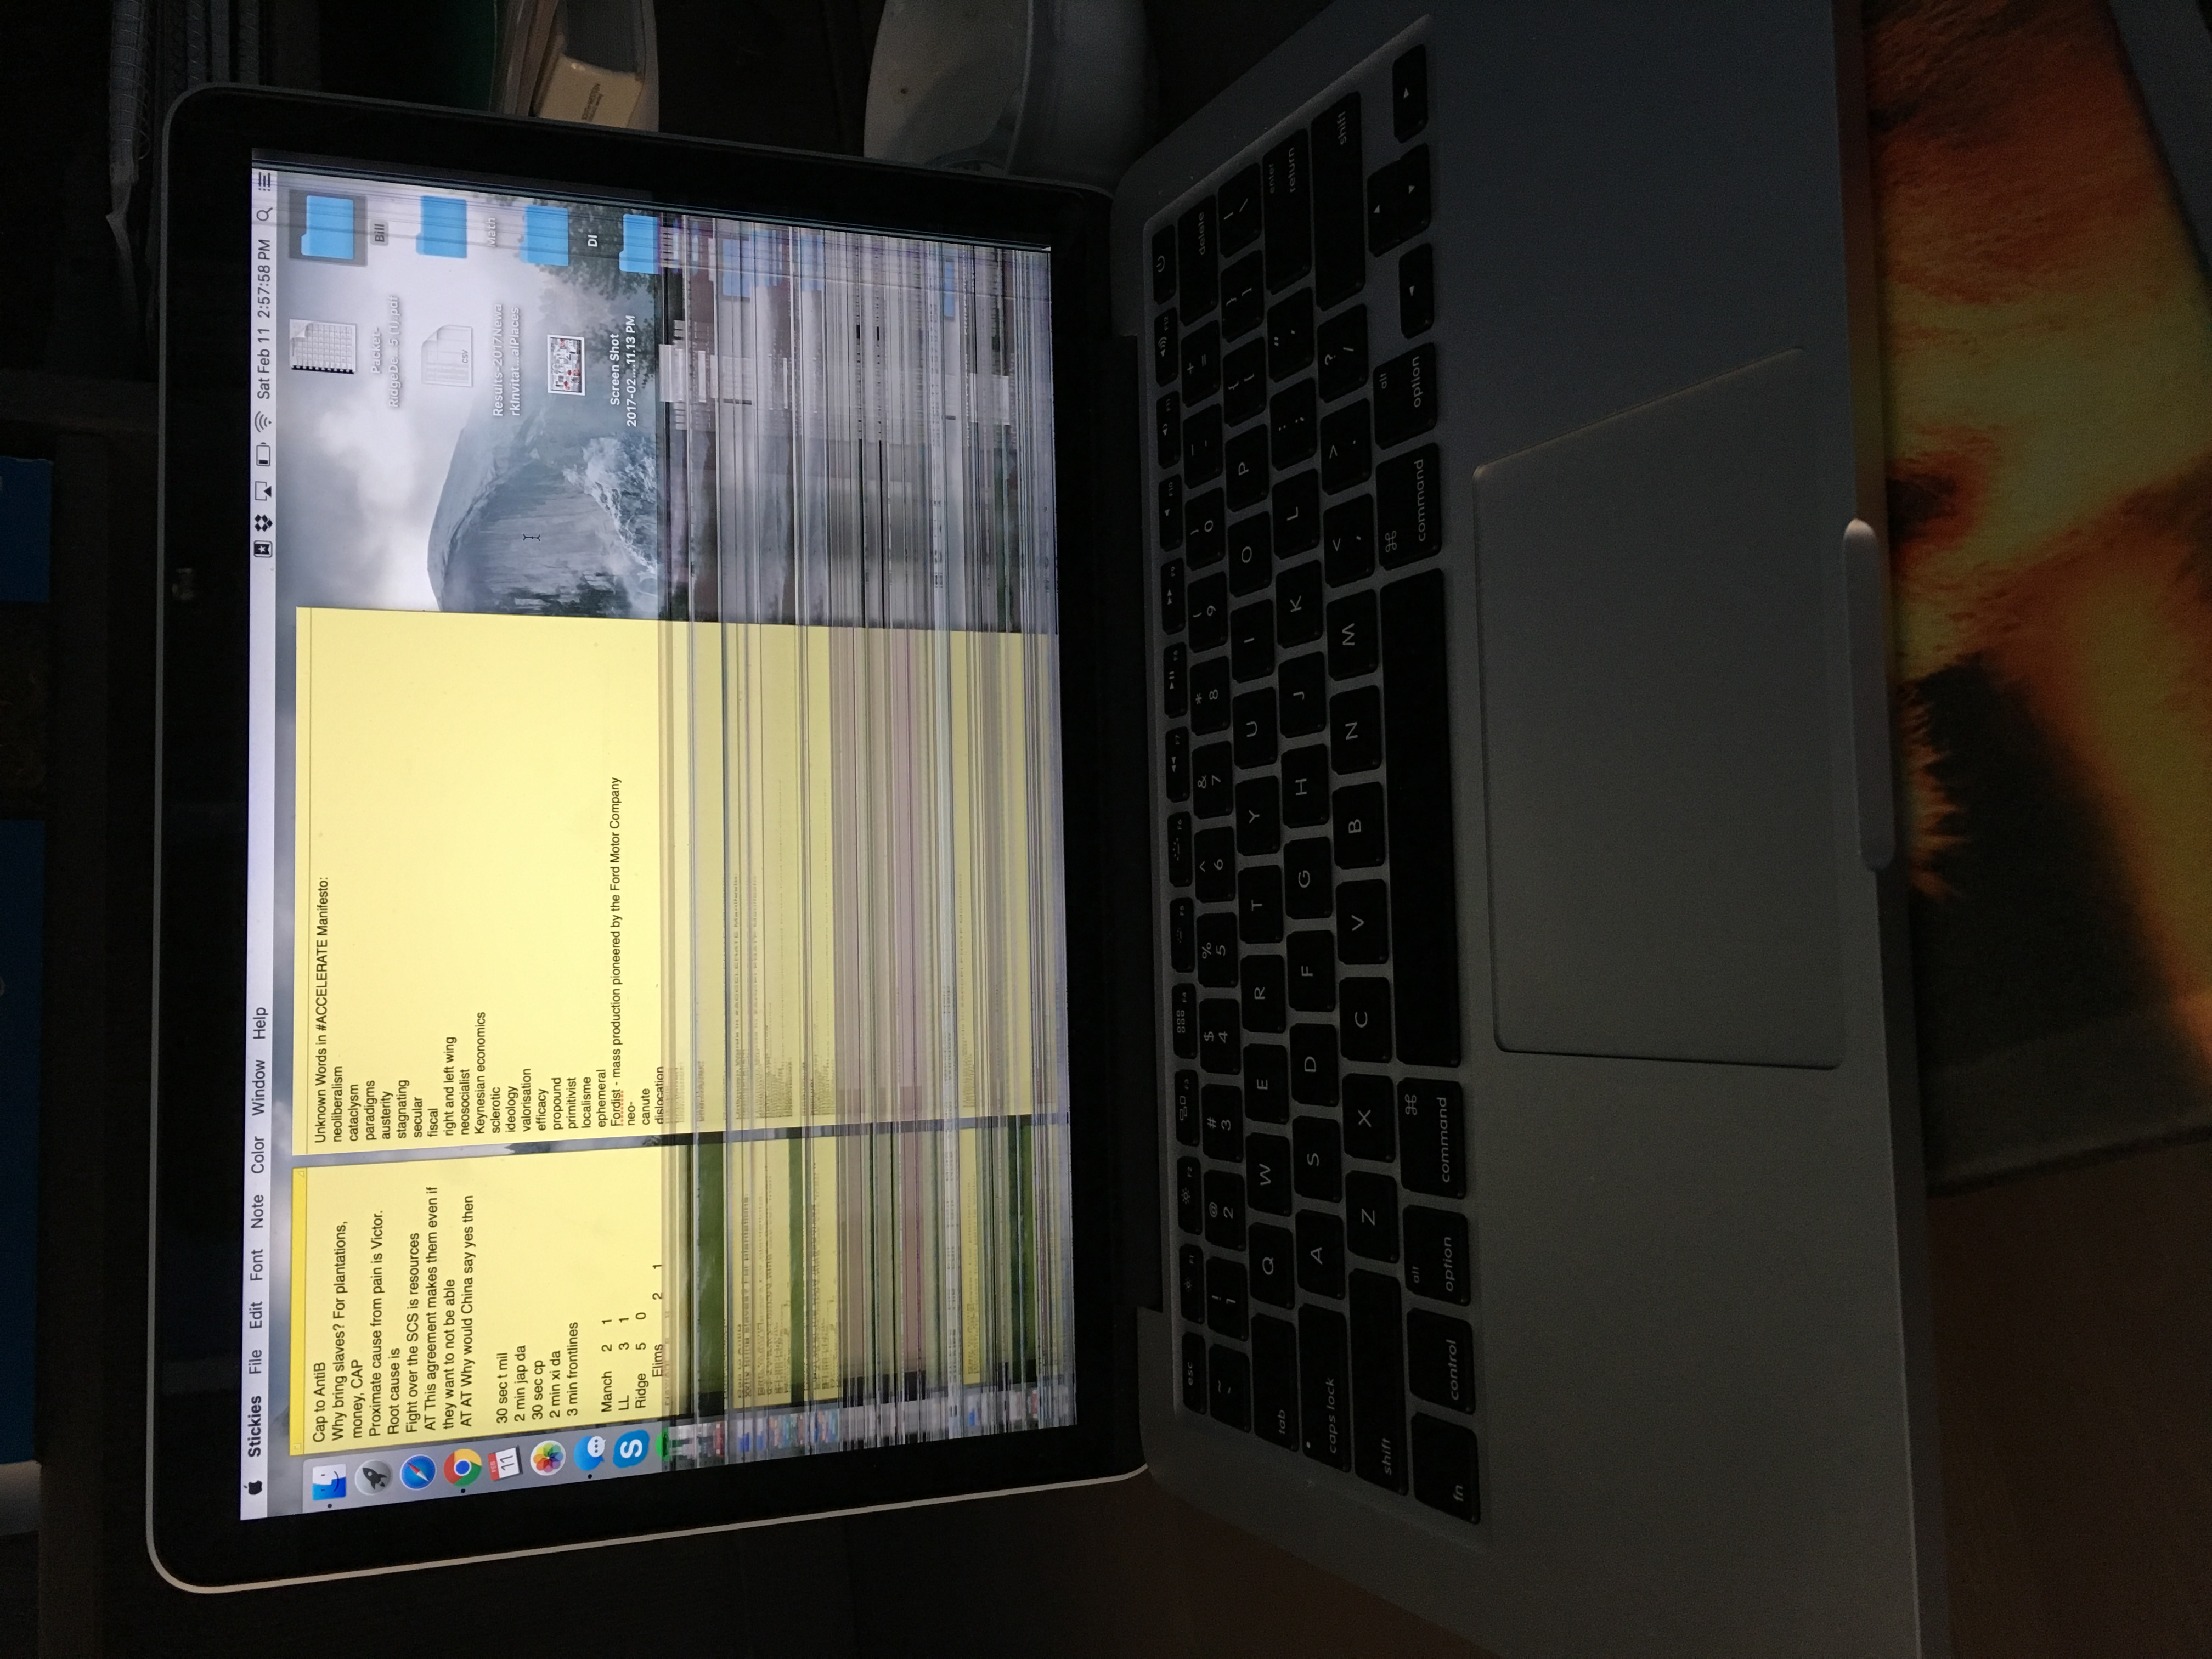 Dropped Macbook Pro has rows and columns … - Apple Community